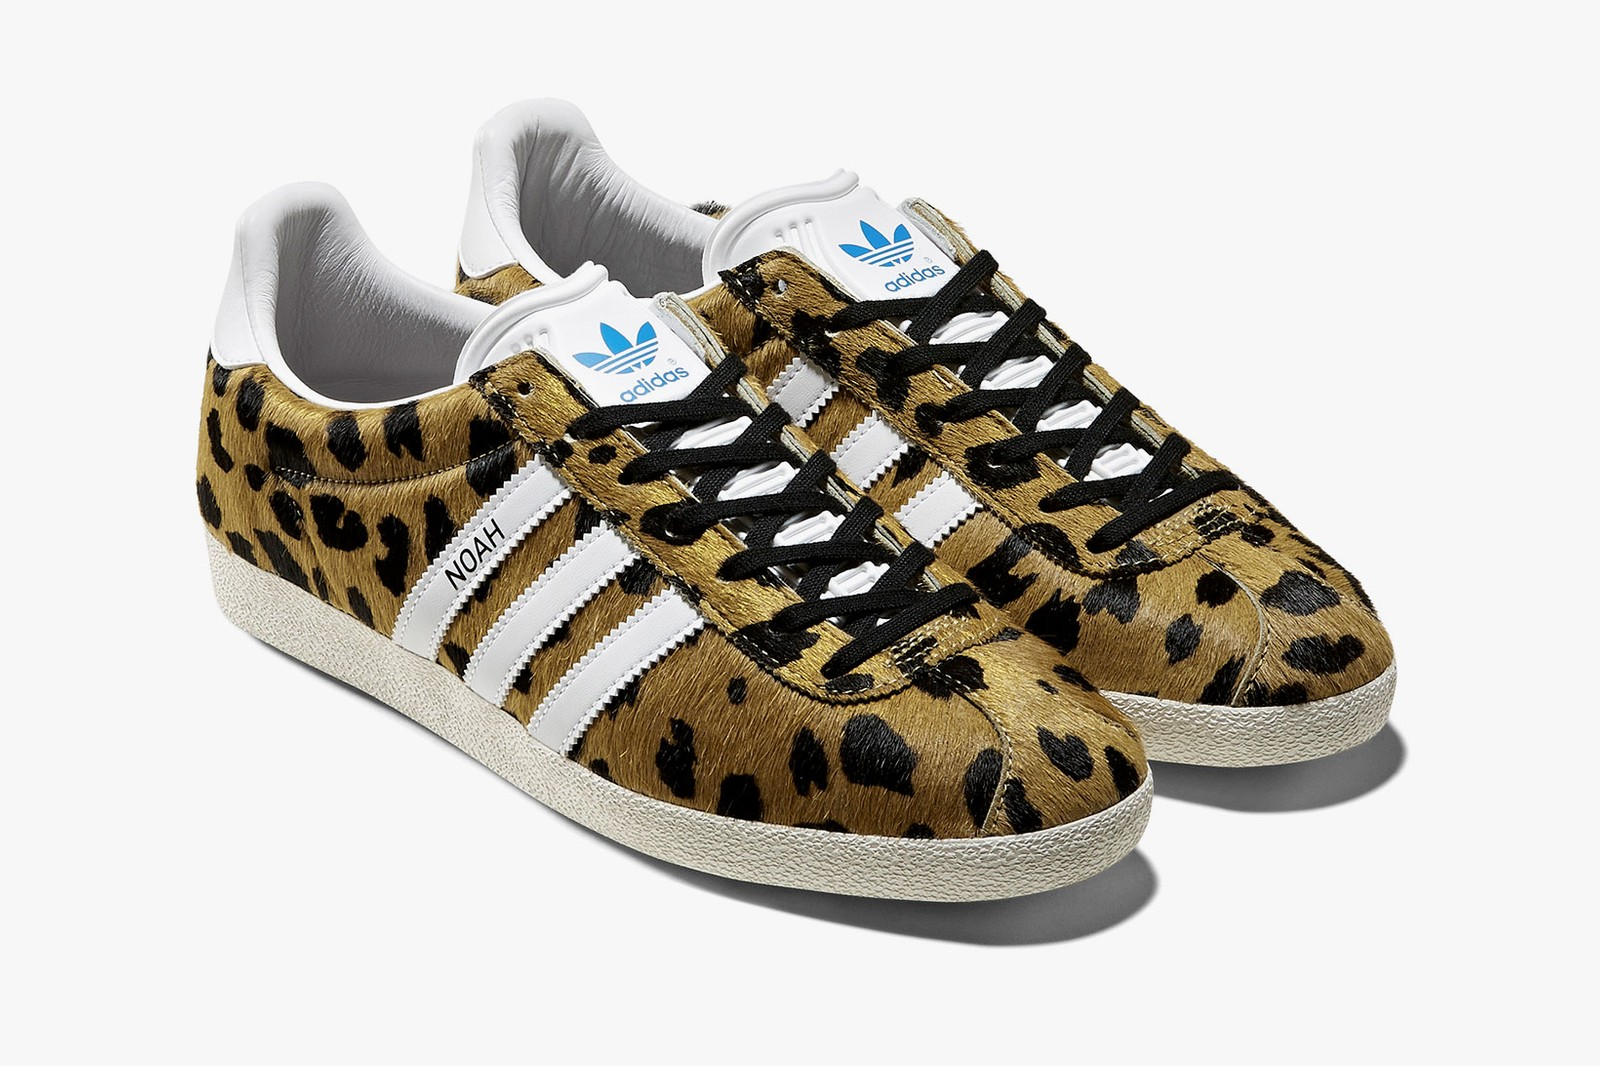 noah adidas originals gazelle camo cheetah sneakers collaboration price release date